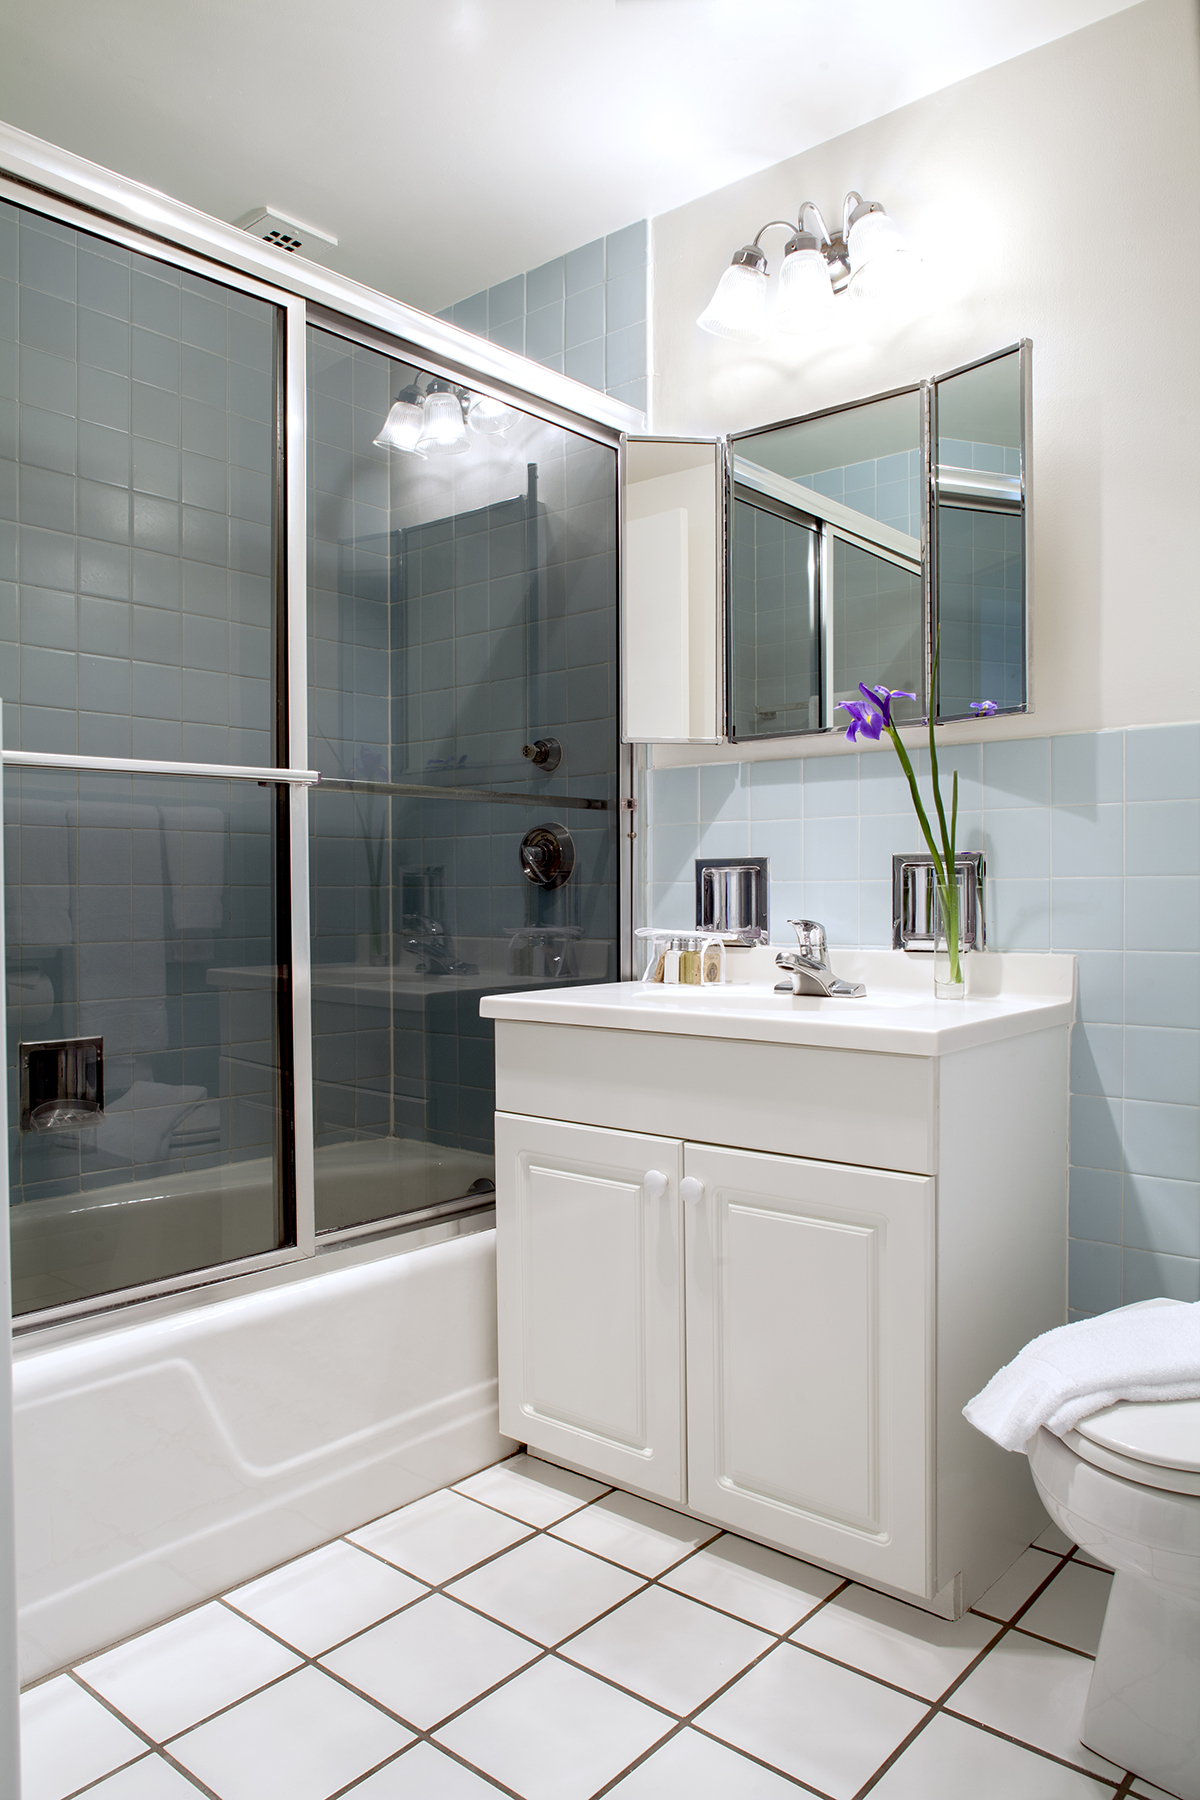 Bathroom at Prudential Center Apartments